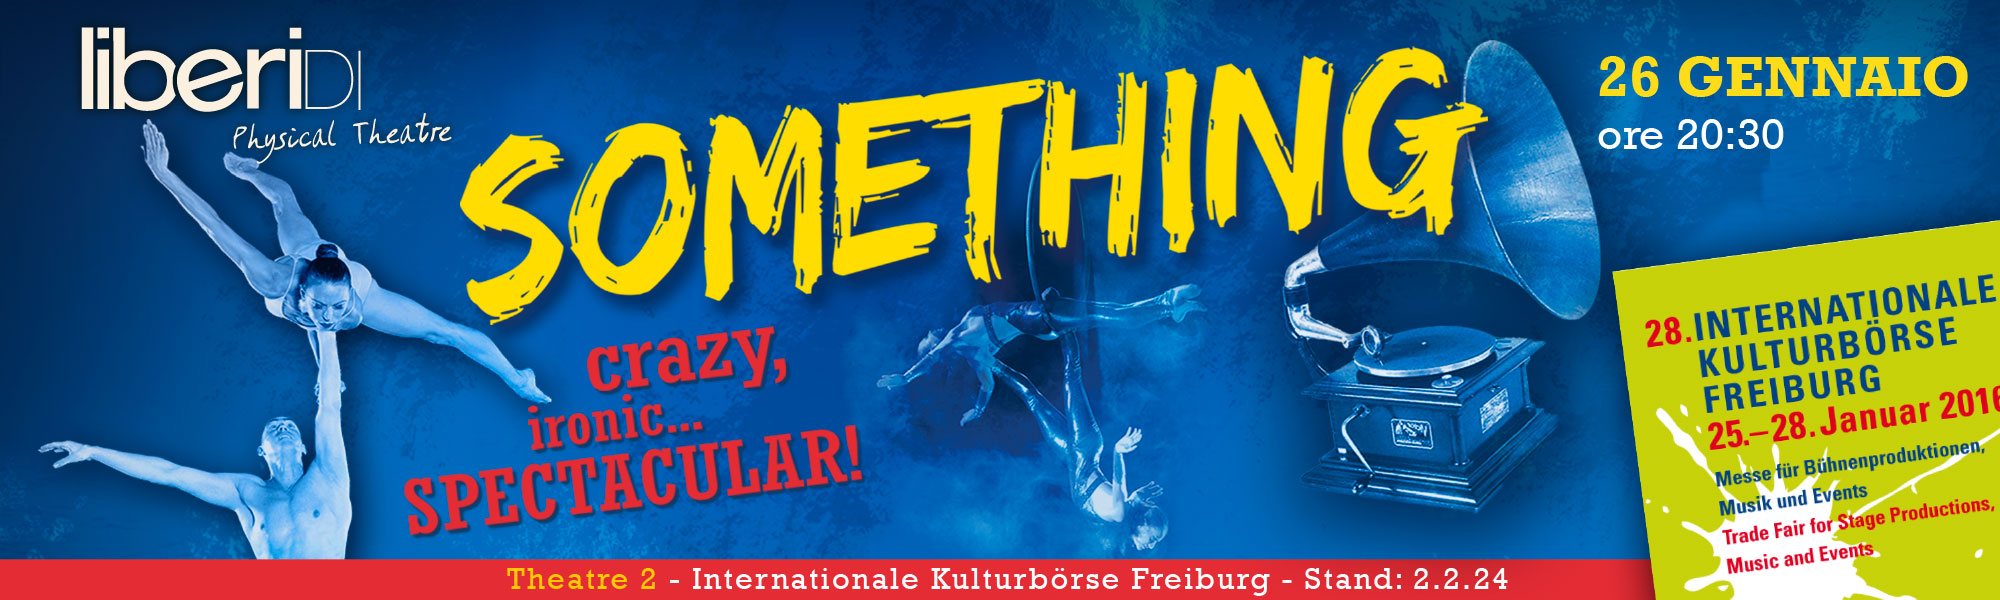 Festival Internazionale di Friburgo con Something!